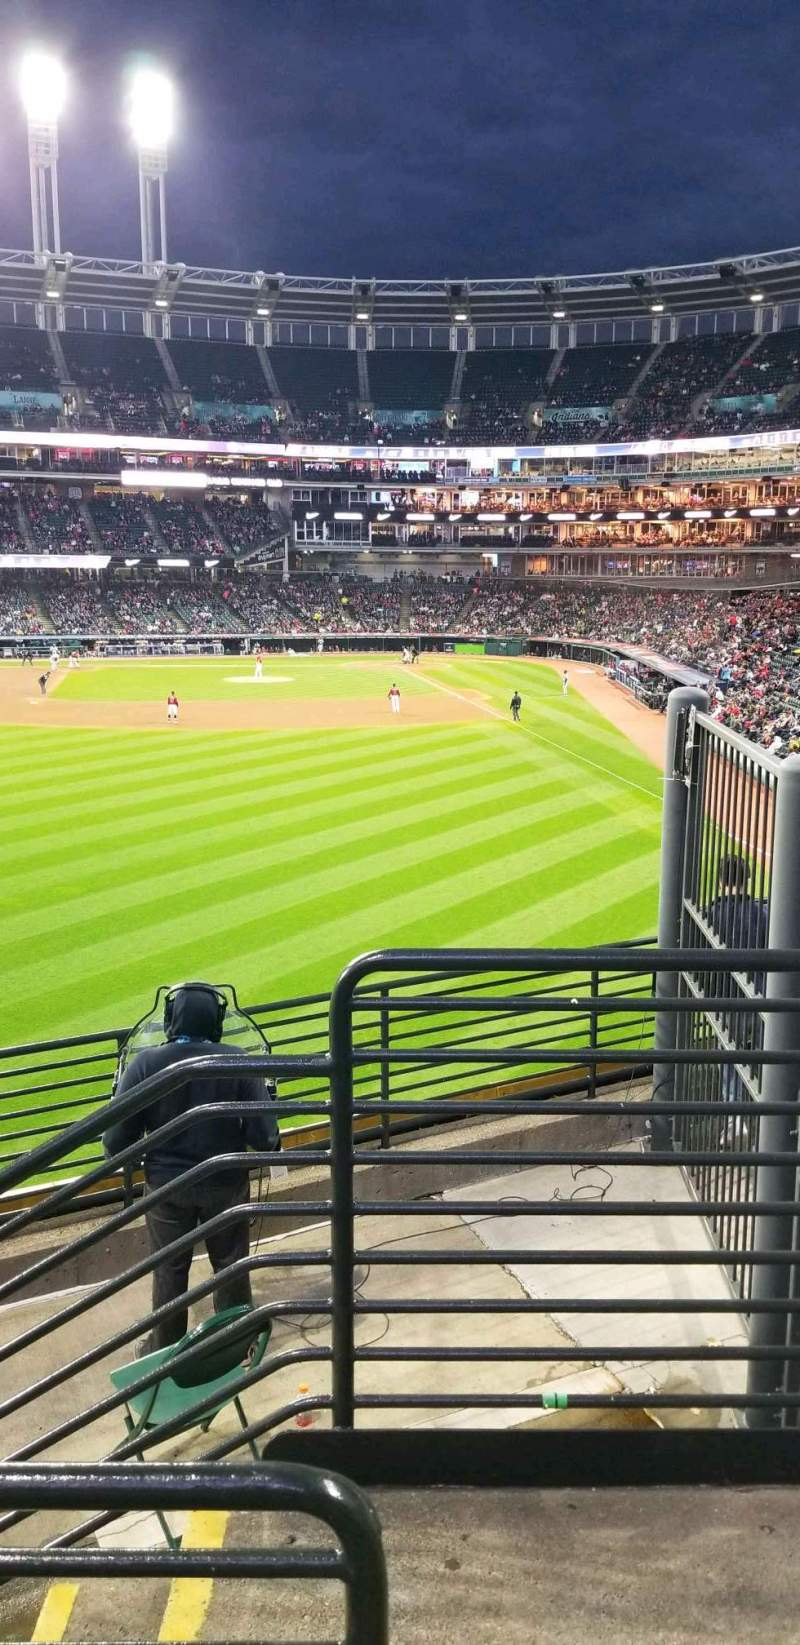 Seating view for Progressive Field Section 180 Row f Seat 17